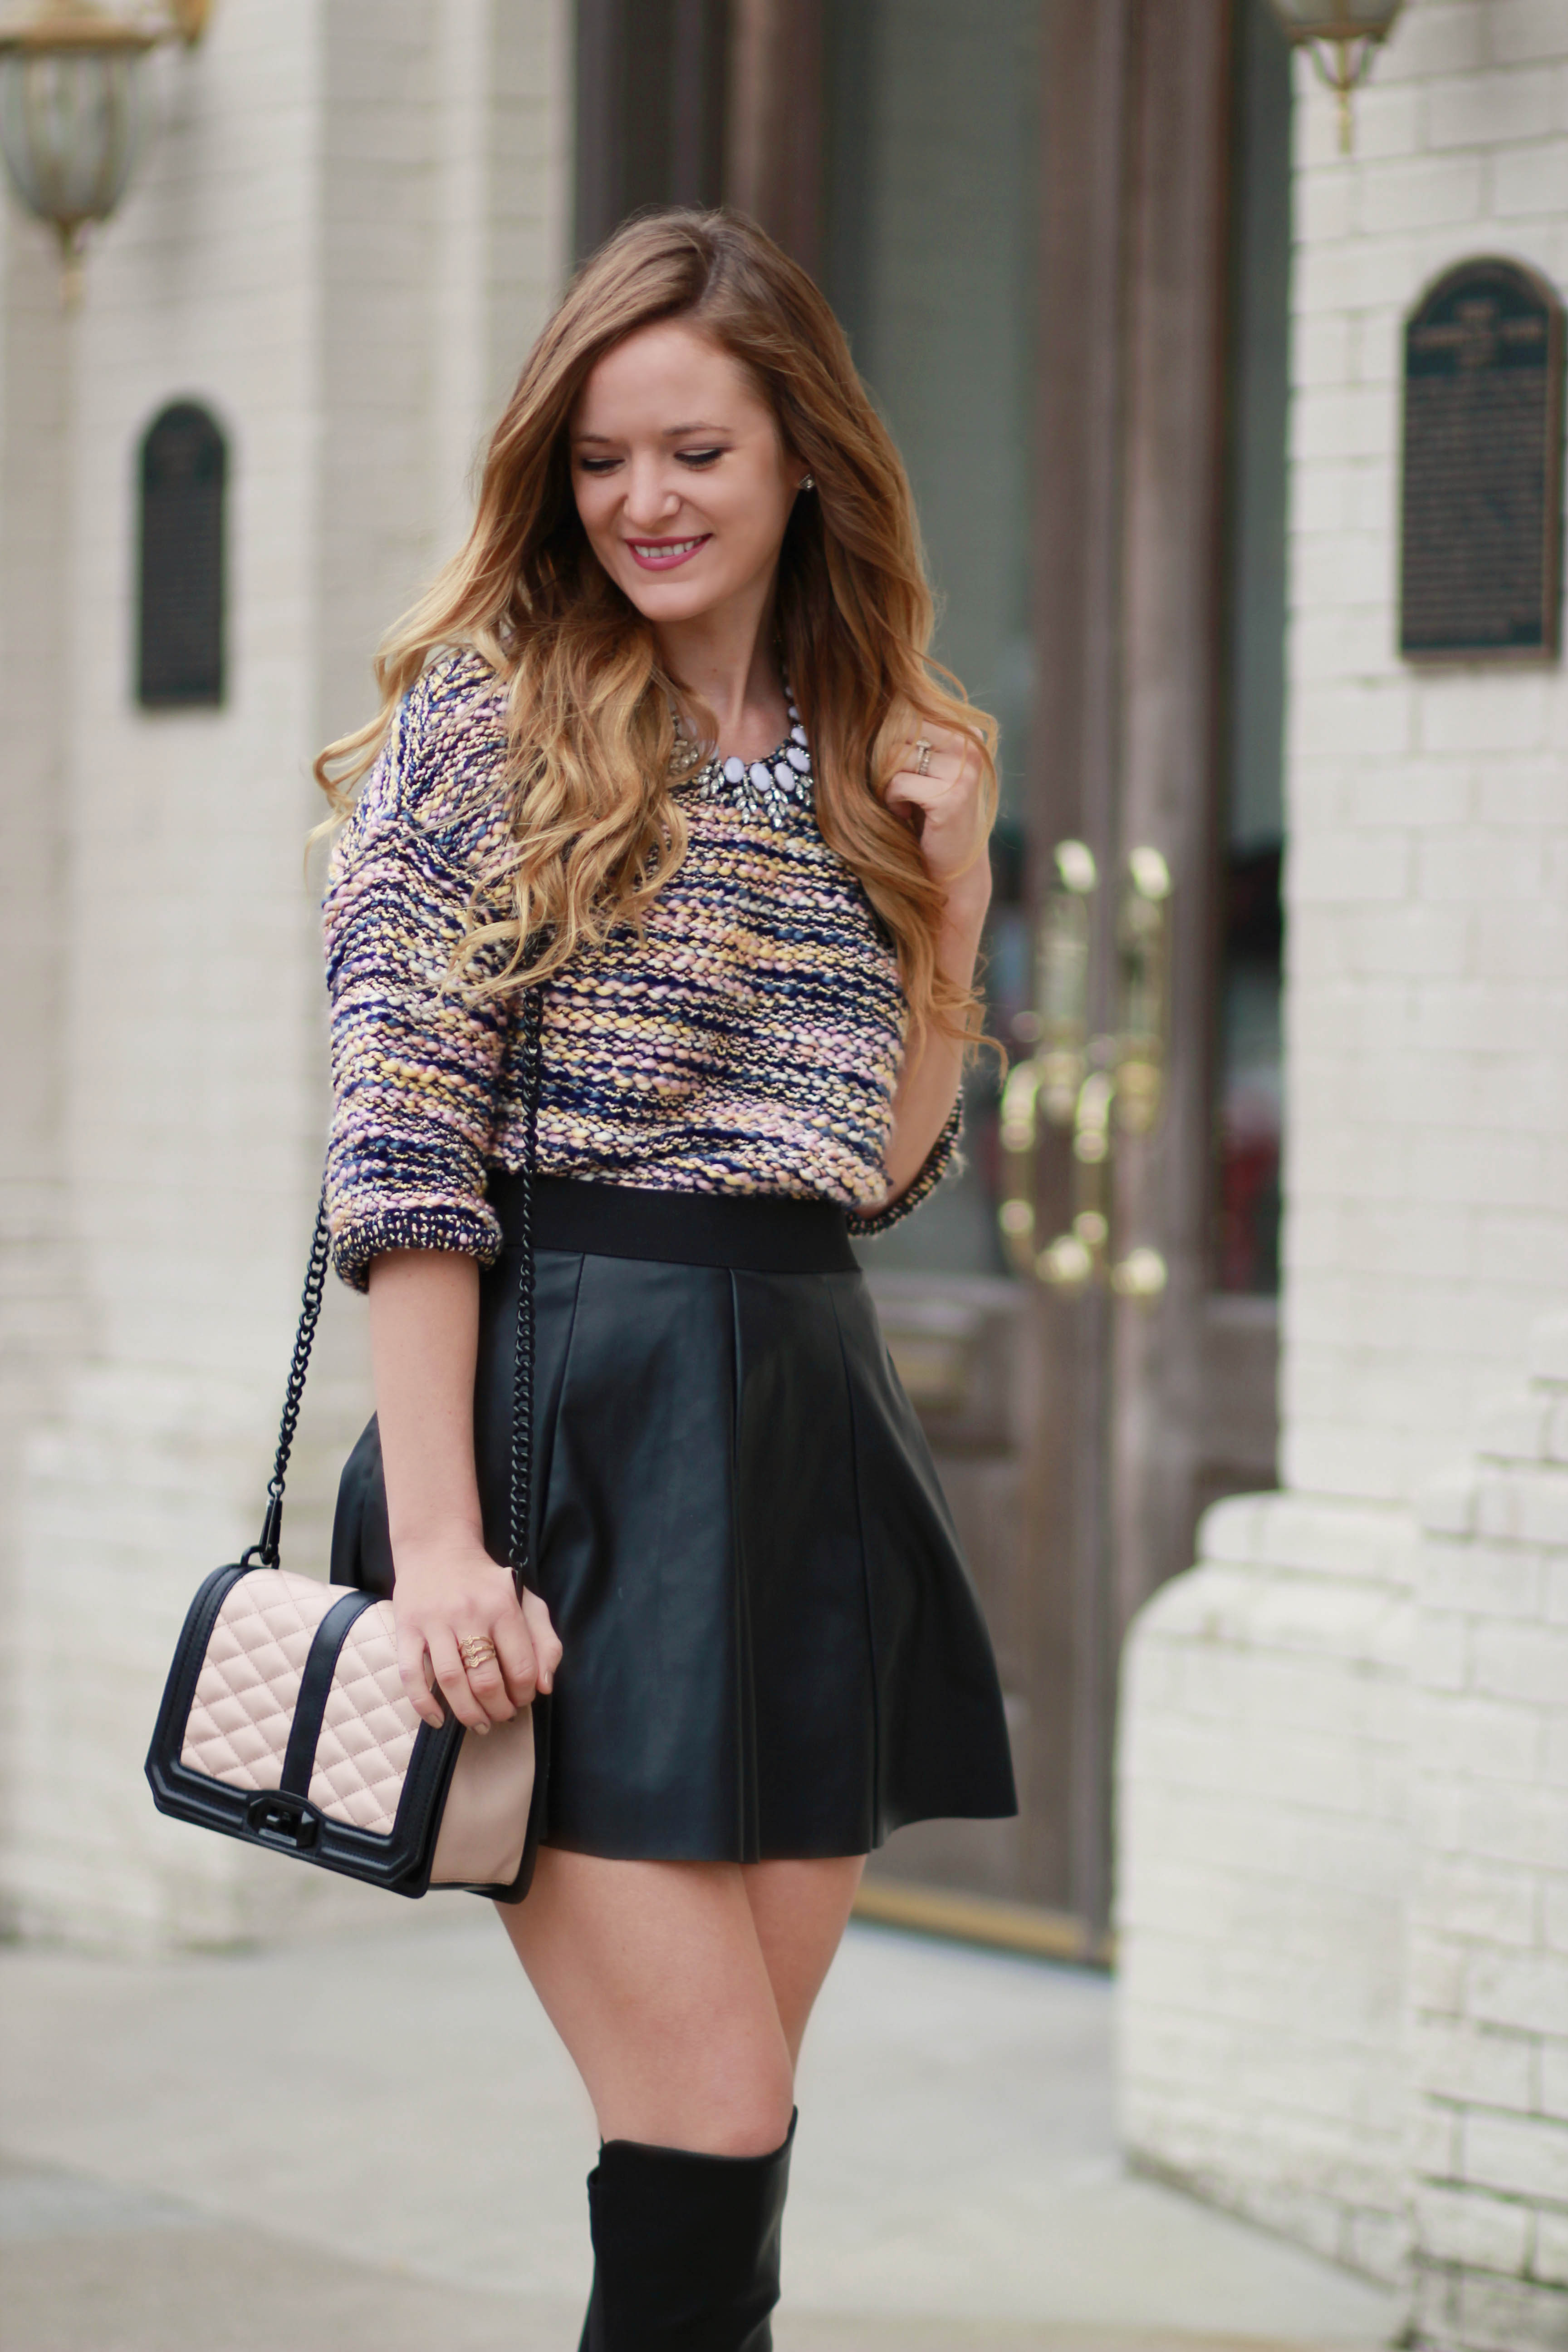 orlando, florida fashion blogger styles h&m sweater with forever 21 keather skater skirt, dsw over the knee boots and rebbeca minkhoff crossbody for a casual fall outfit